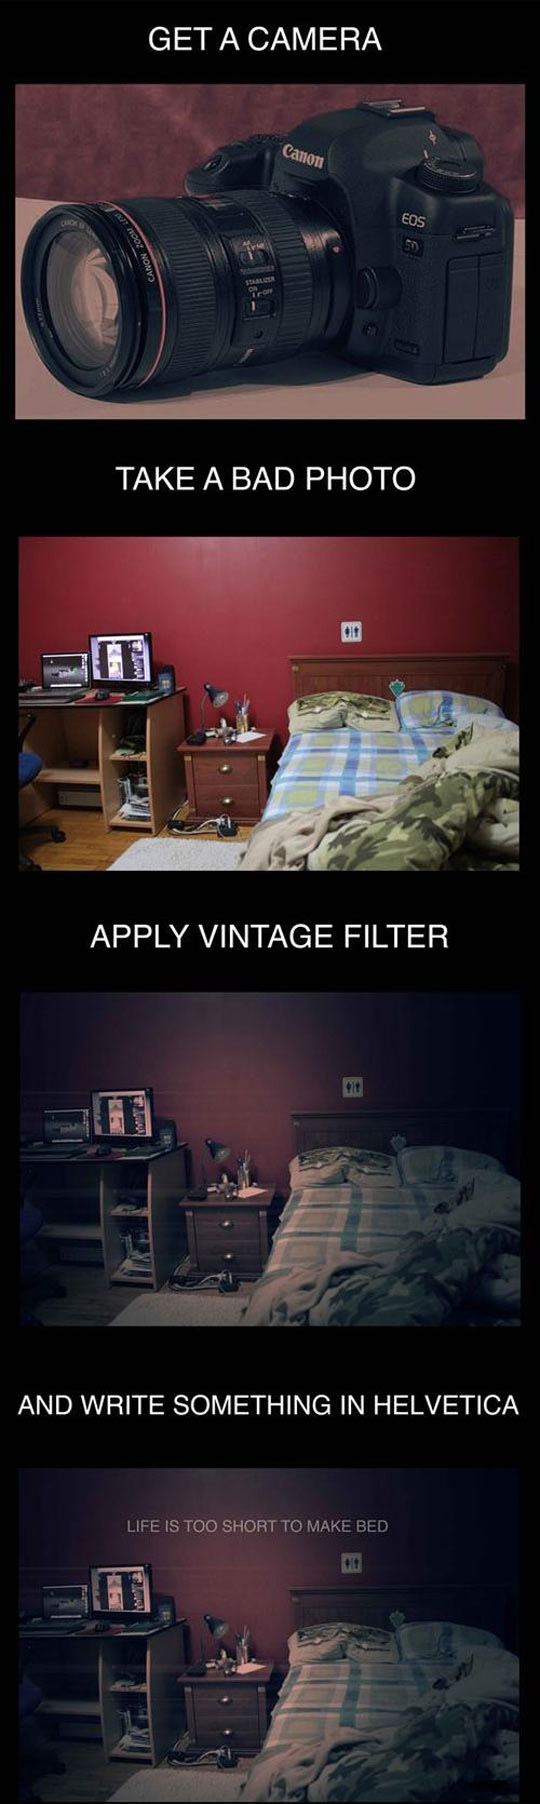 How to take a hipster motivational photo…